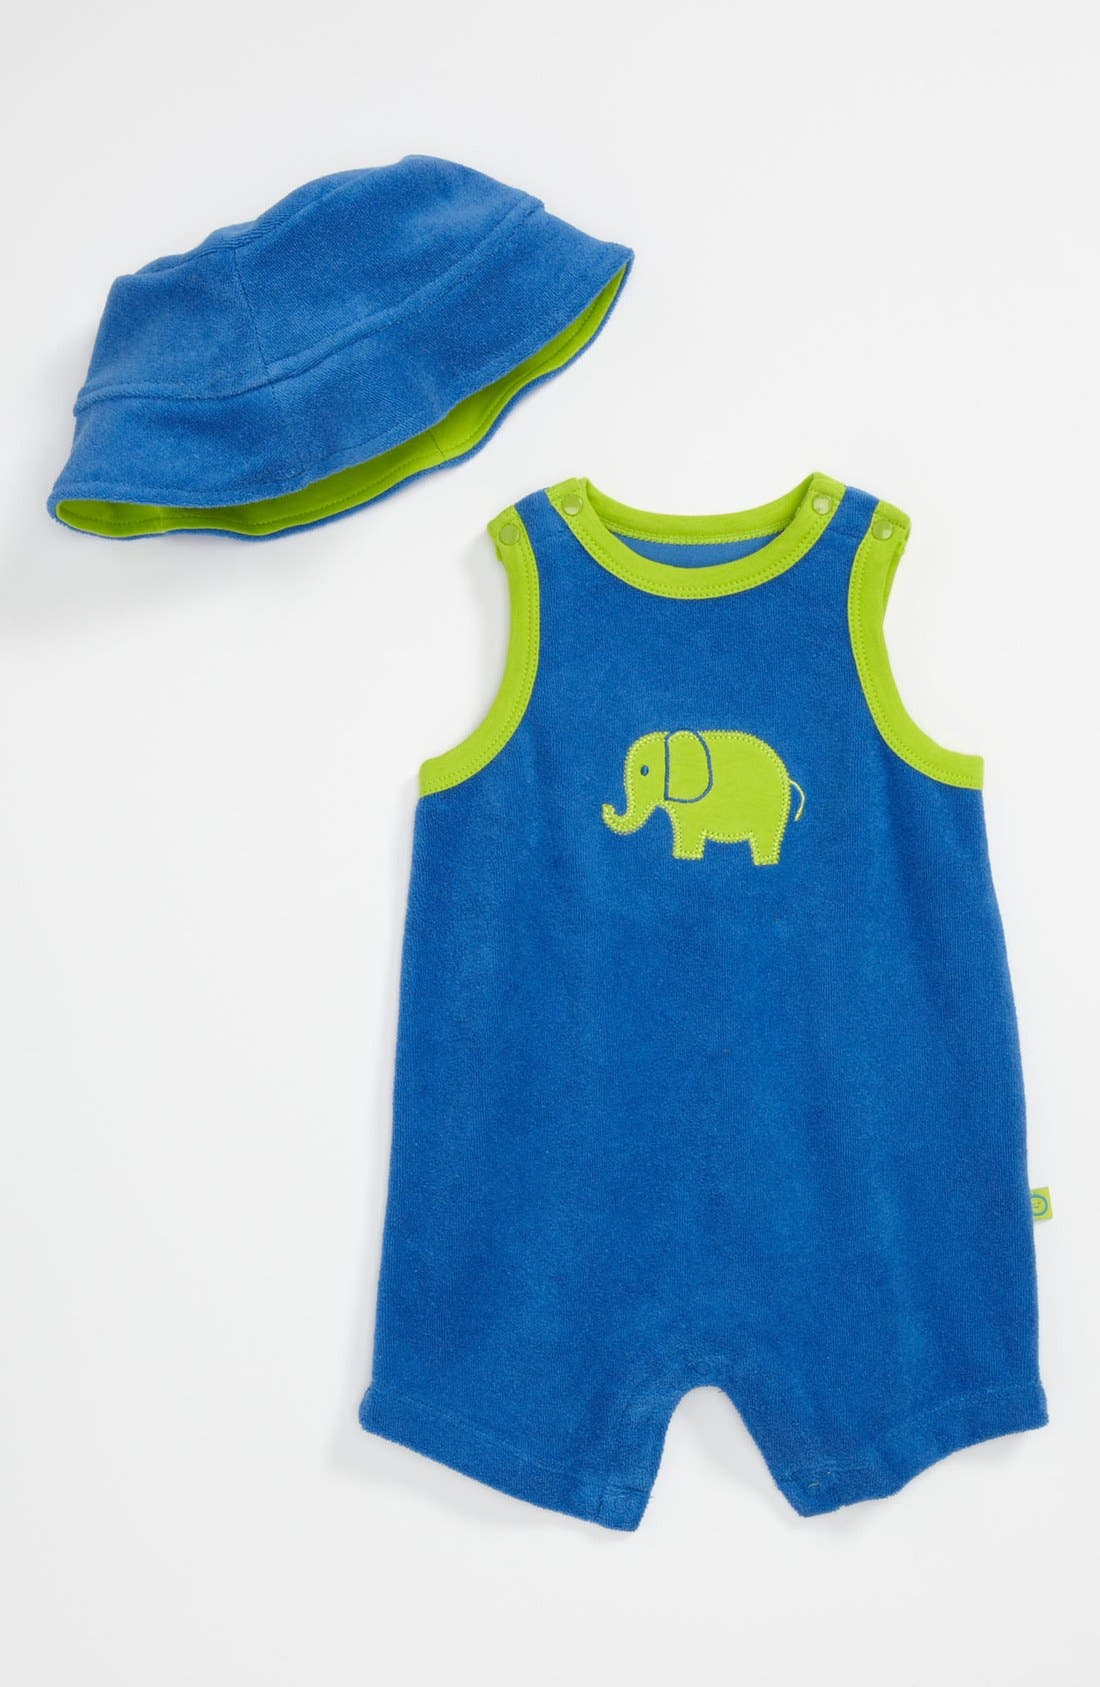 Main Image - Offspring 'Strong Elephant' Romper & Hat (Baby)